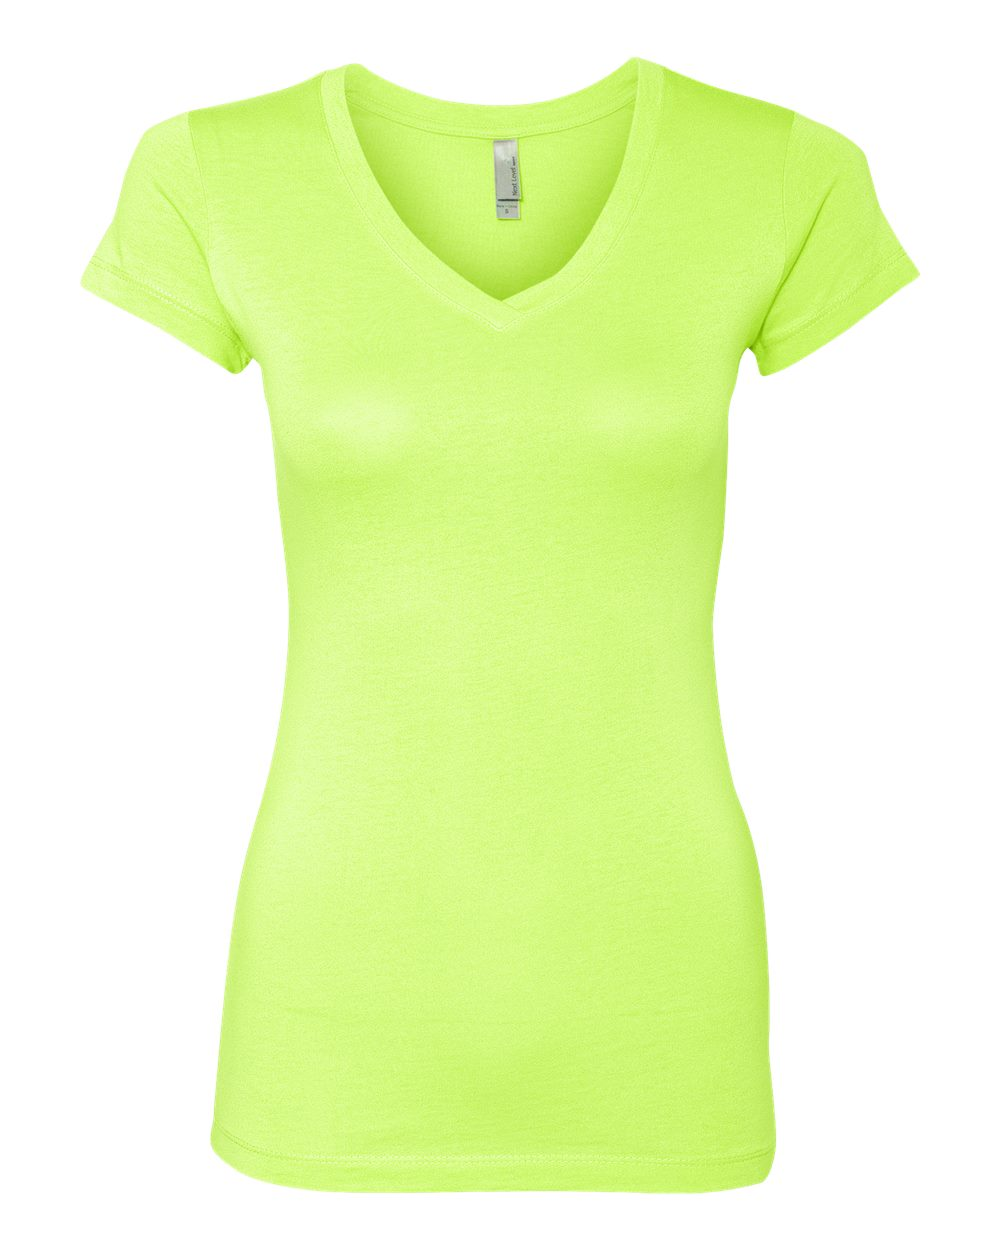 Next_Level_3400L_Neon_Yellow_Front_High.jpg